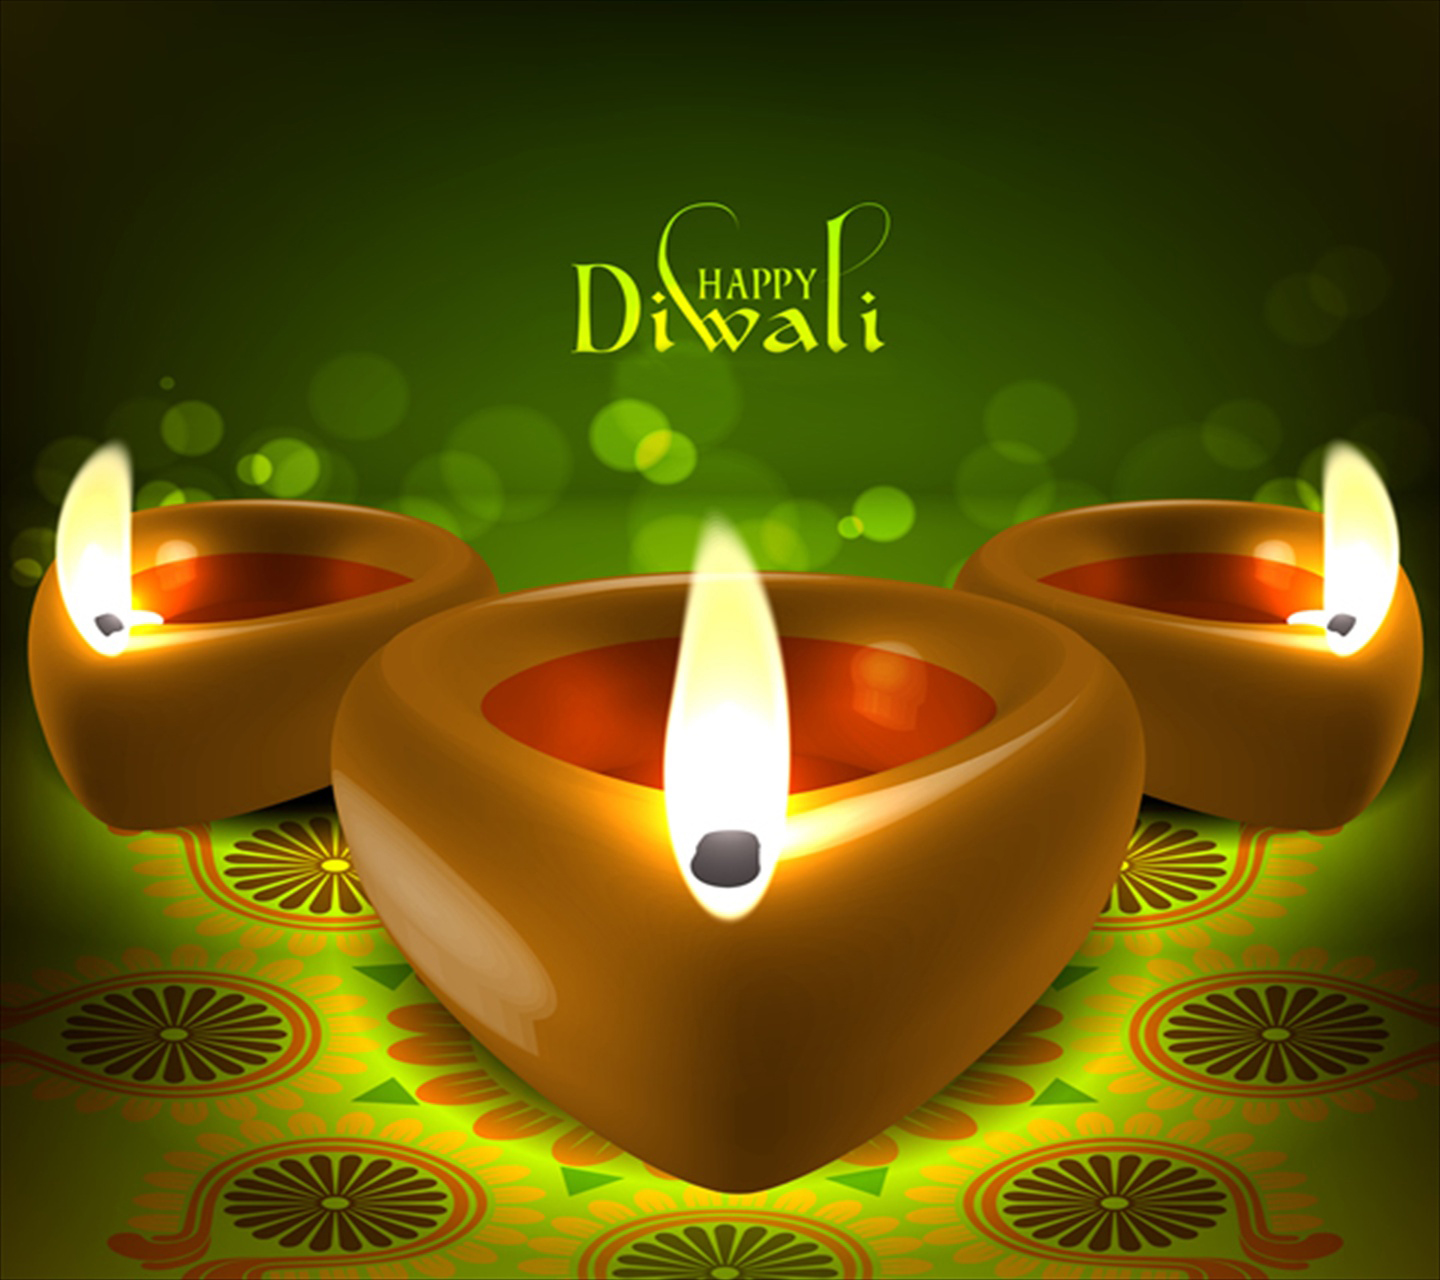 happy diwali wishes vector image in high quality  happy